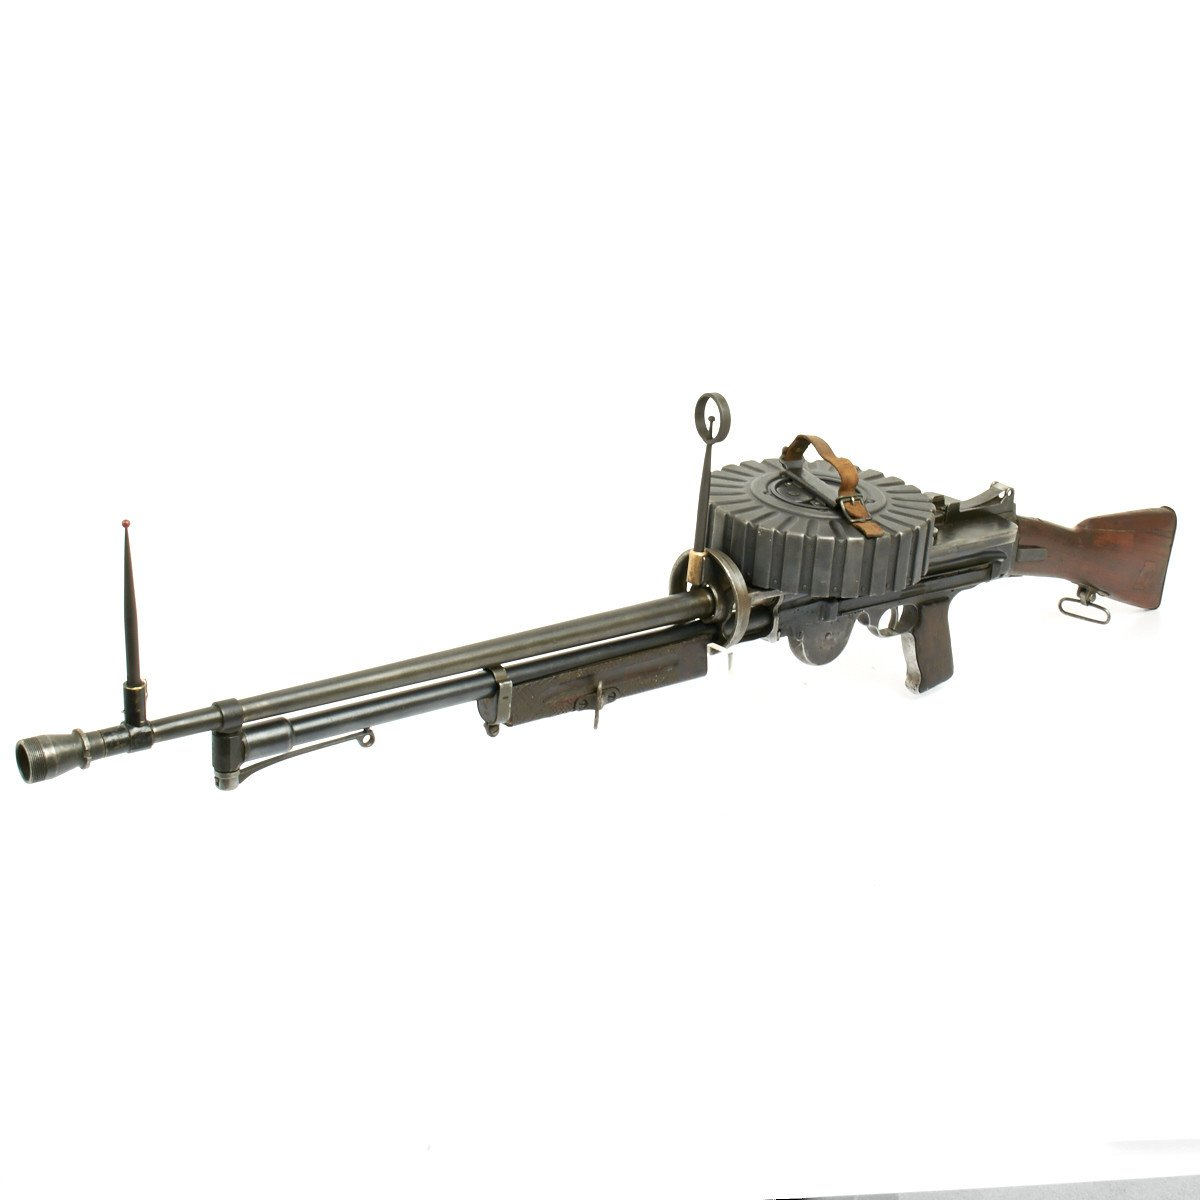 Original British WWI Lewis Aircraft Gun Modified for WWII Home Guard with  97 Round Drum Magazine